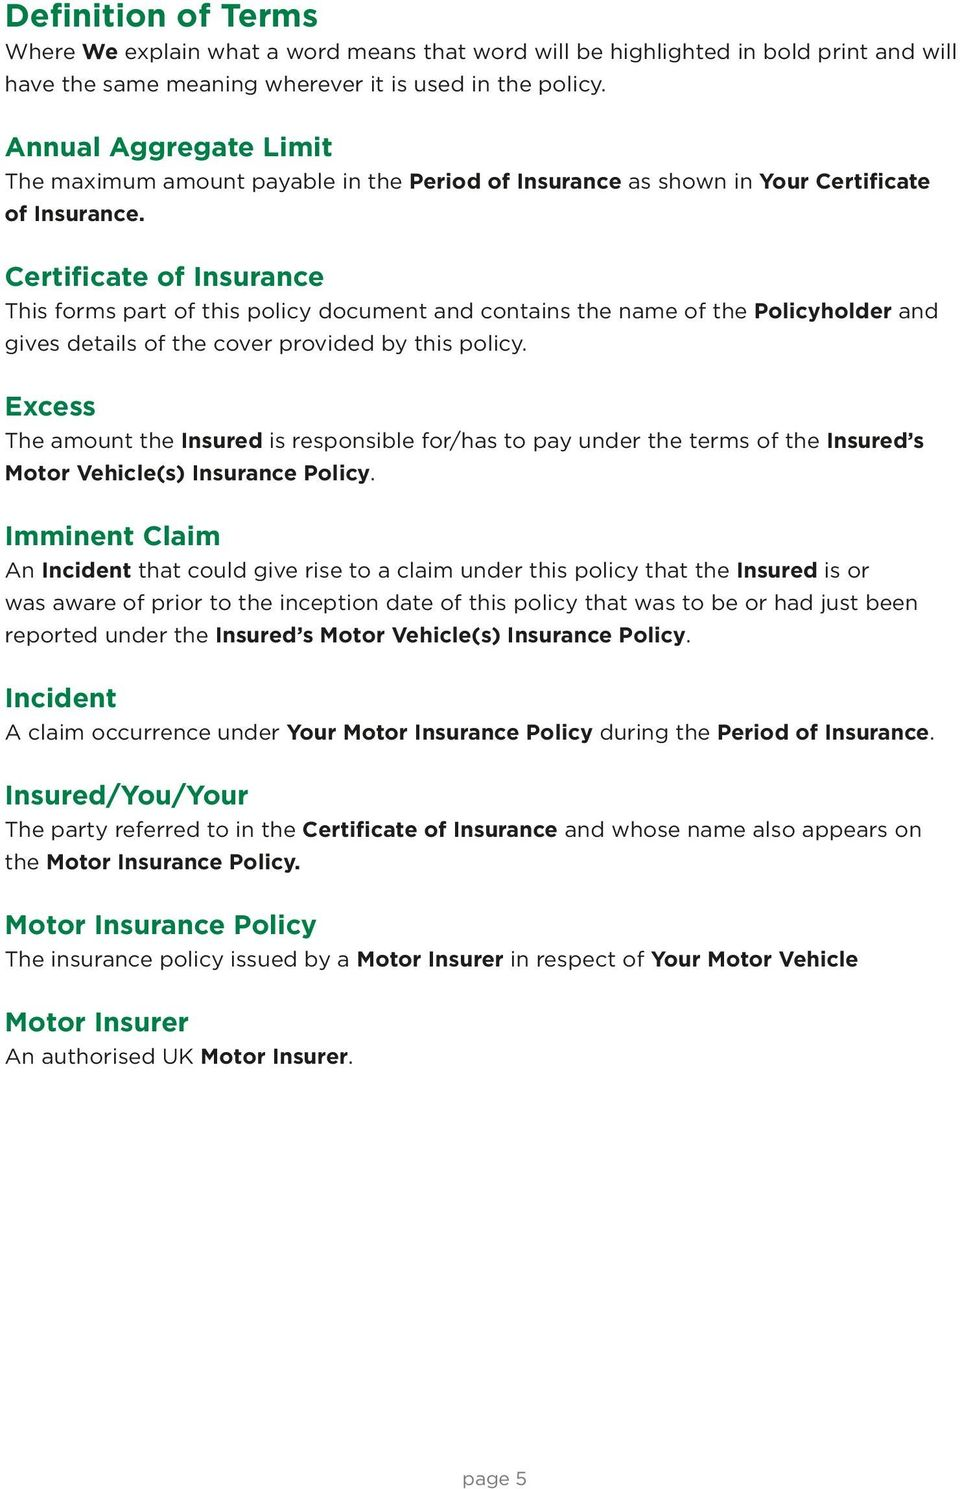 Certificate of Insurance This forms part of this policy document and contains the name of the Policyholder and gives details of the cover provided by this policy.